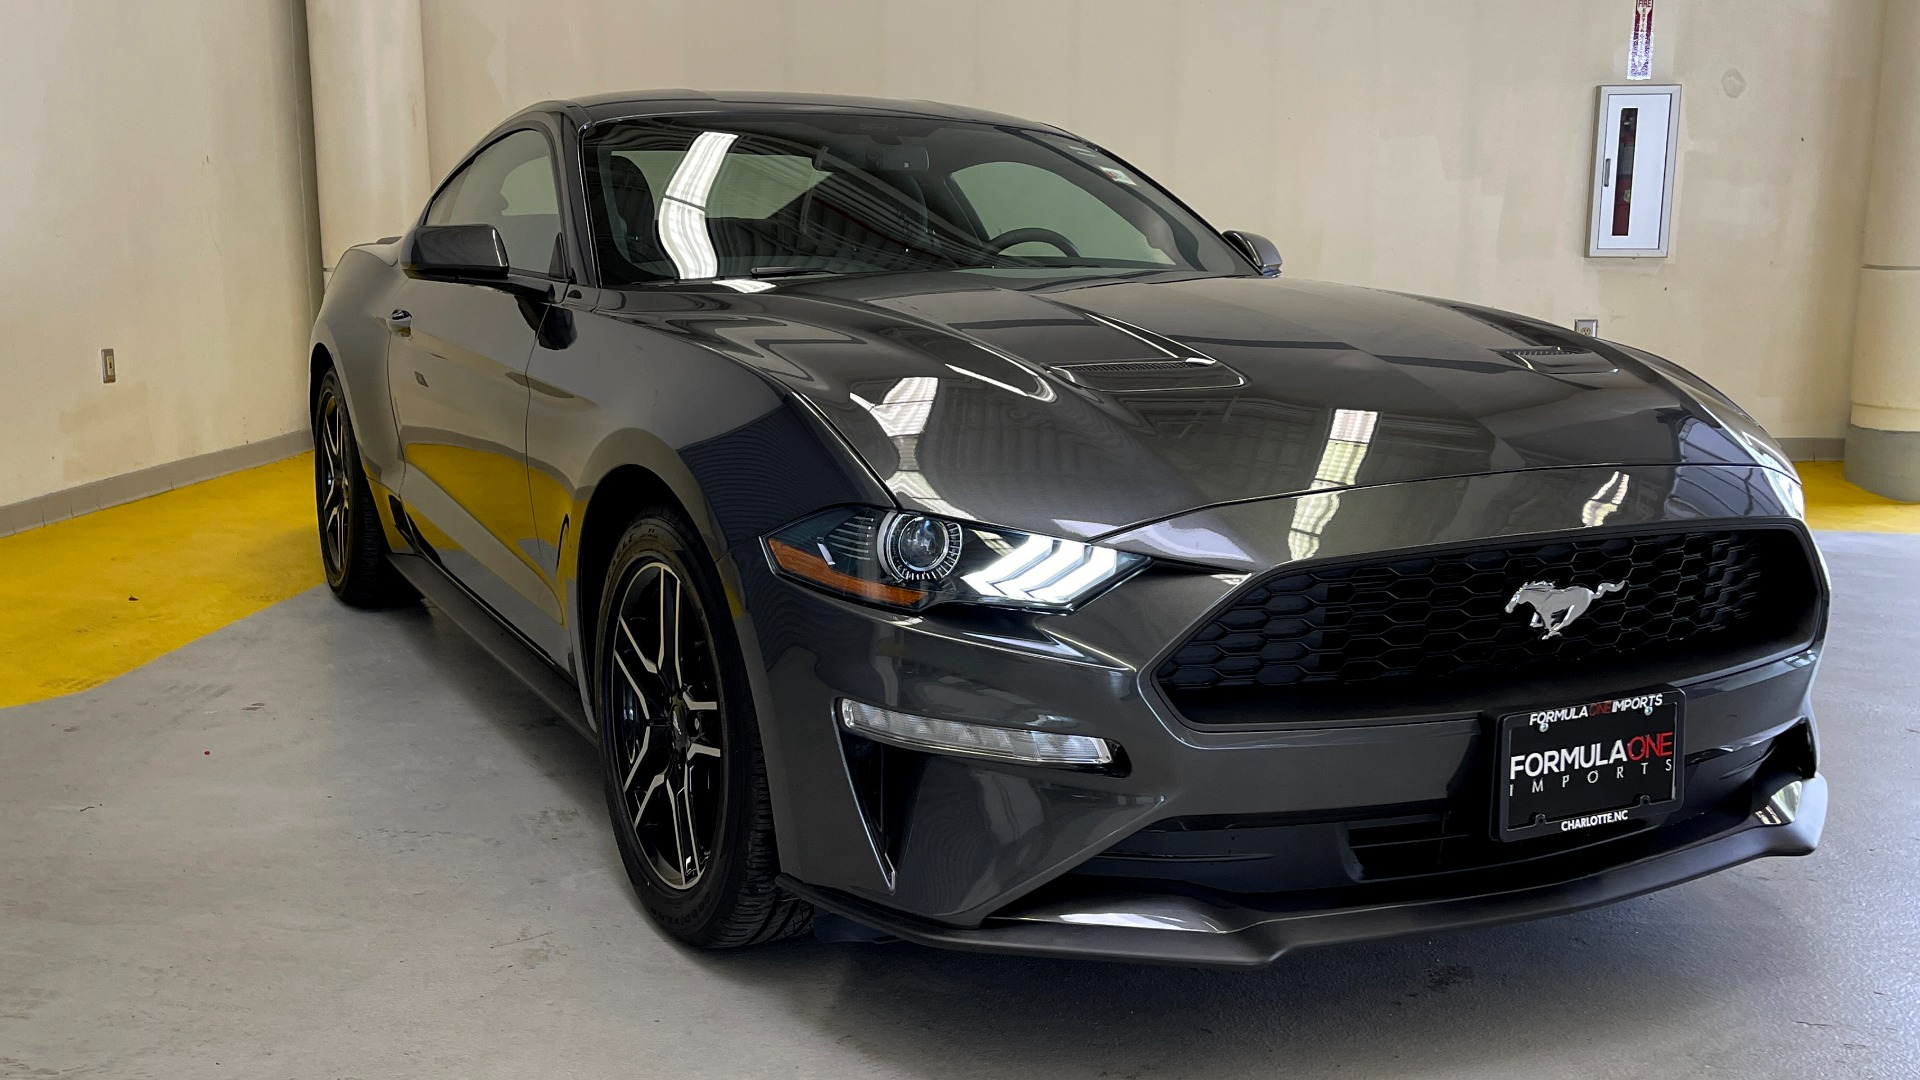 Used 2019 Ford MUSTANG ECOBOOST 2.3L / 10-SPD AUTO / SYNC3 8INCH SCREEN / TRACK APPS / REARVIEW for sale $31,795 at Formula Imports in Charlotte NC 28227 4